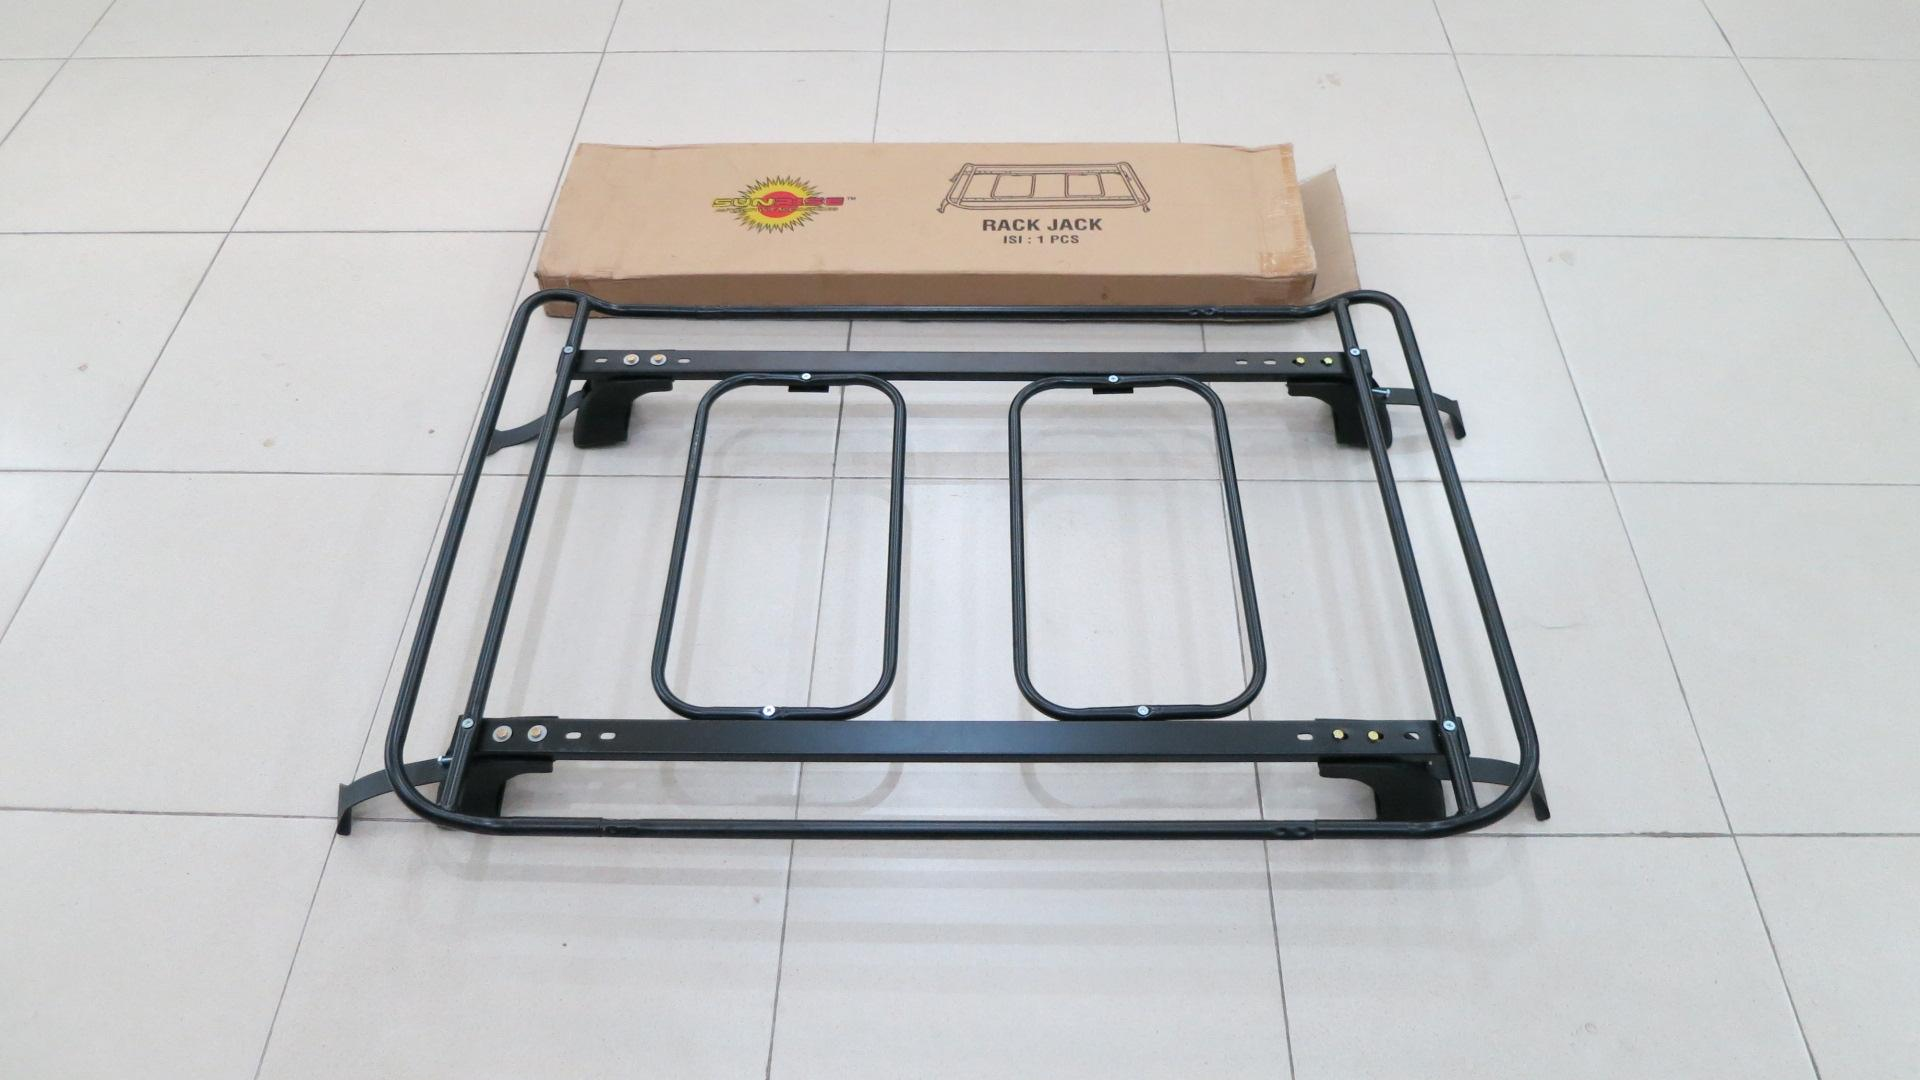 roof rail grand new avanza veloz agya 1.2 trd m/t features rack bagasi atas toyota all dan harga sunrise mobil universal hitam